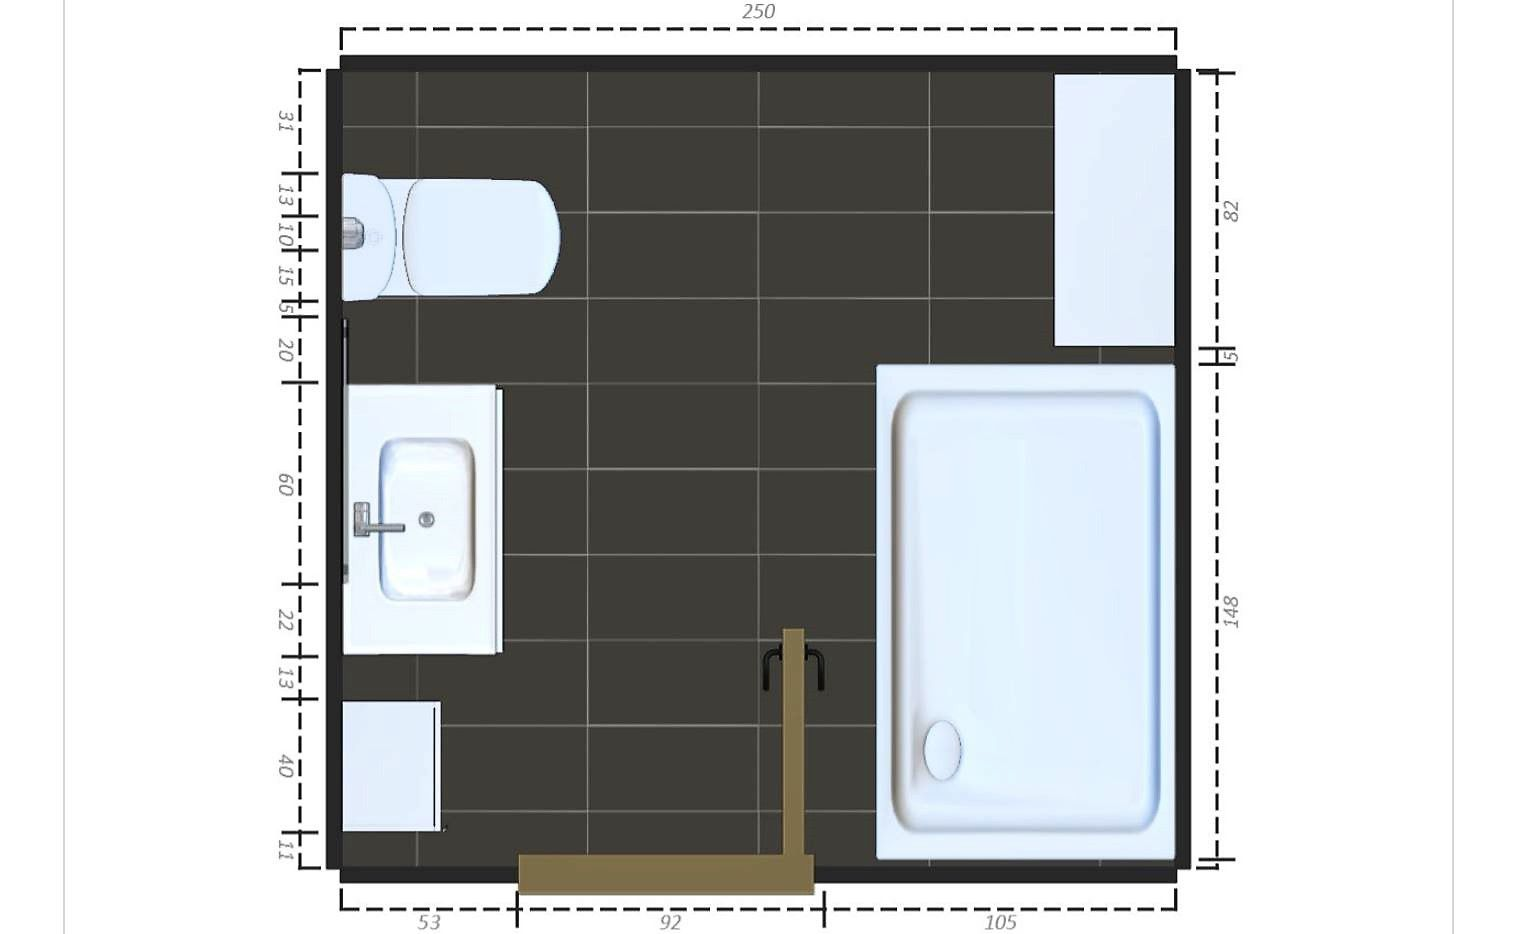 Bathroom layouts planner bathroom planner design your own for Bathroom tile planner